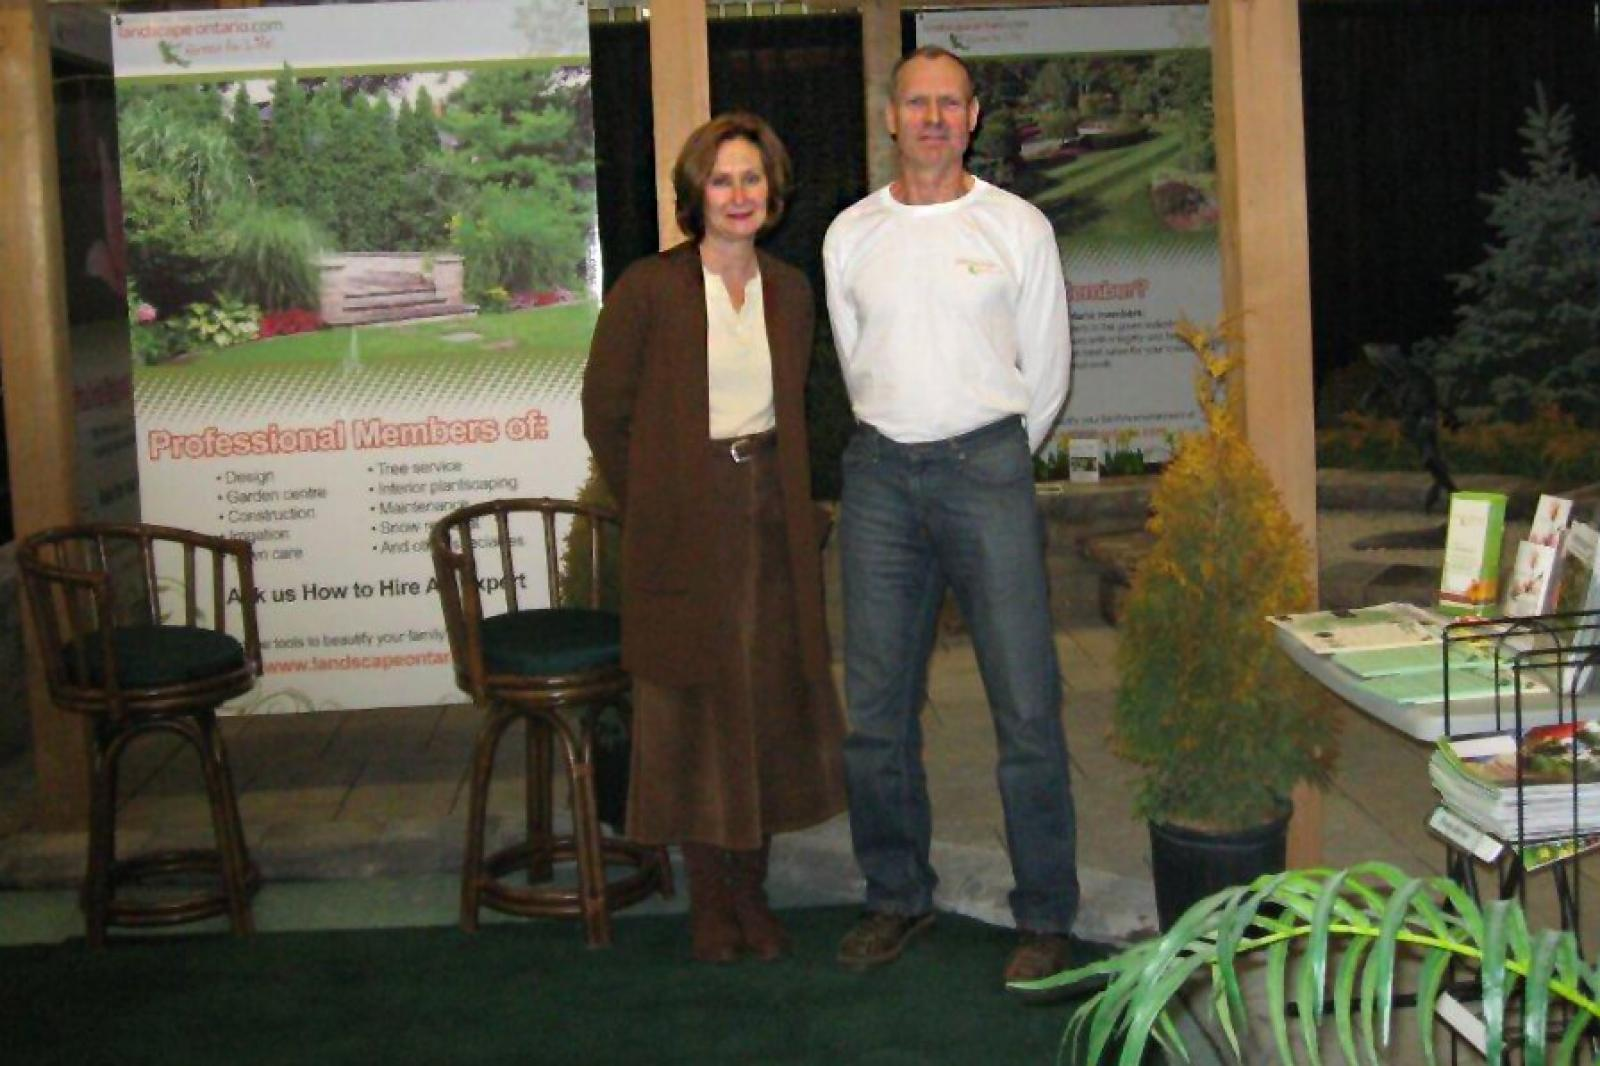 The London Chapter booth promoted LO members and the Chapter garden tour this July 9.